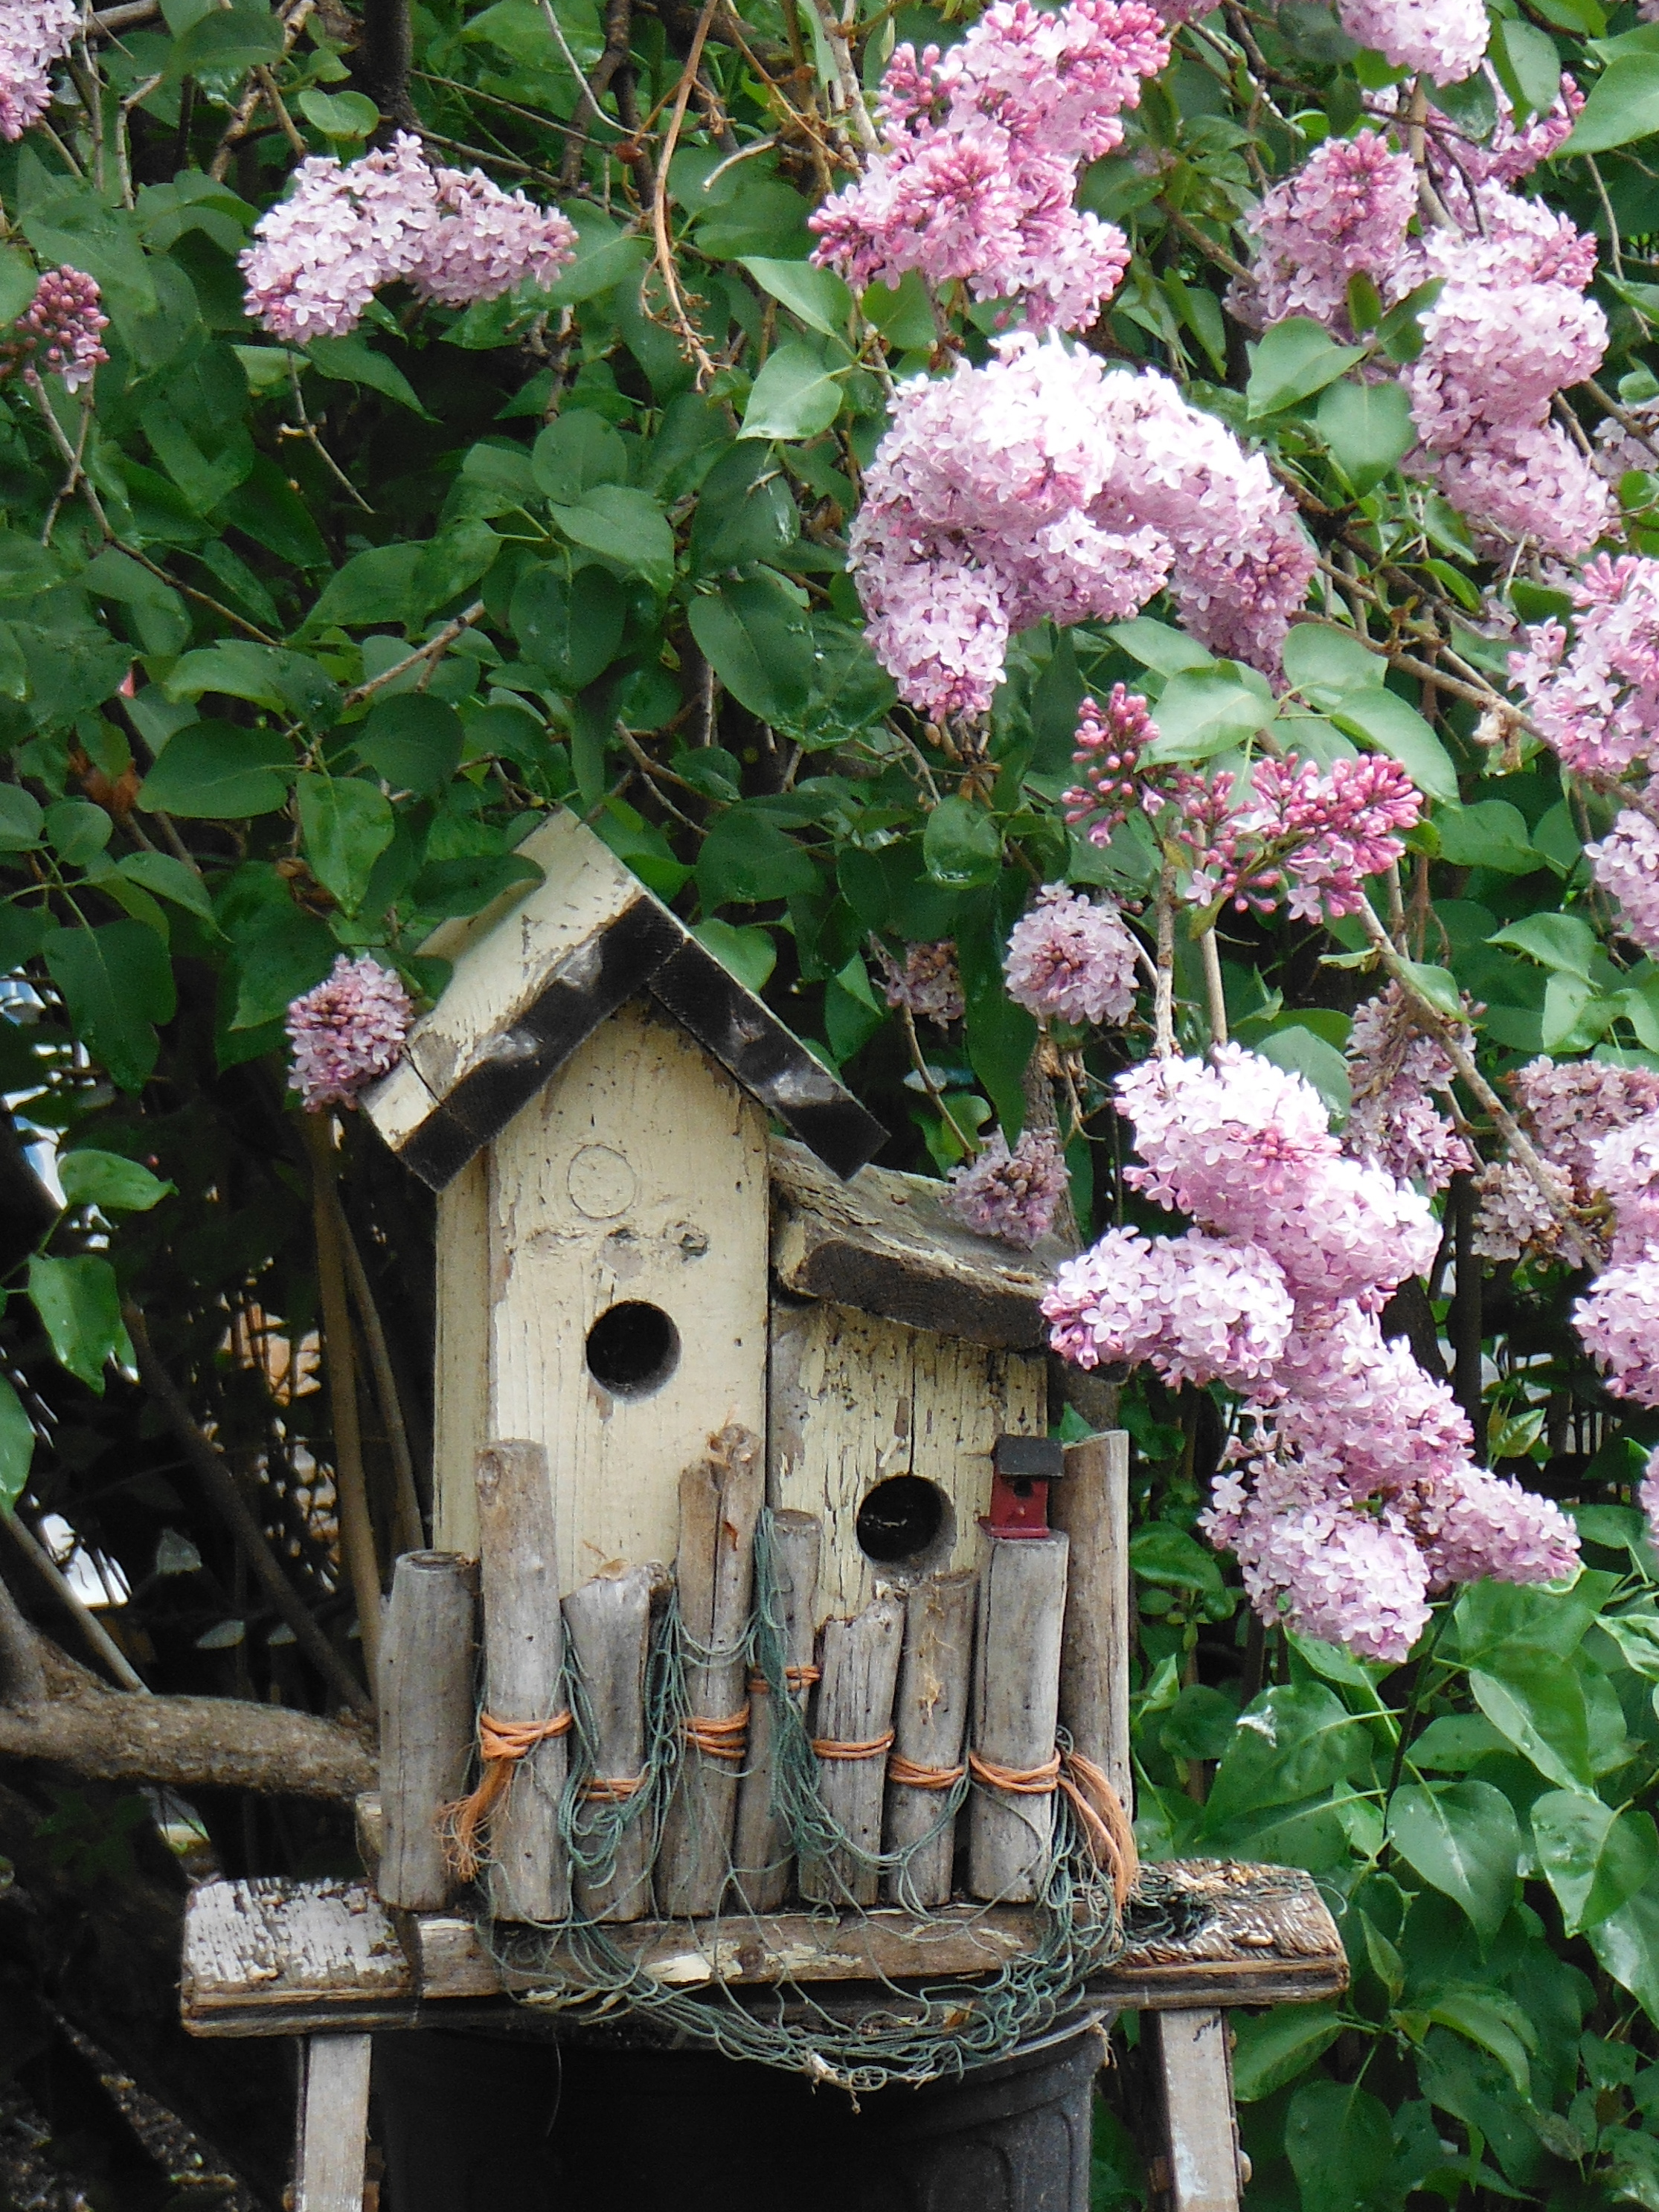 Lilacs surround the bird house